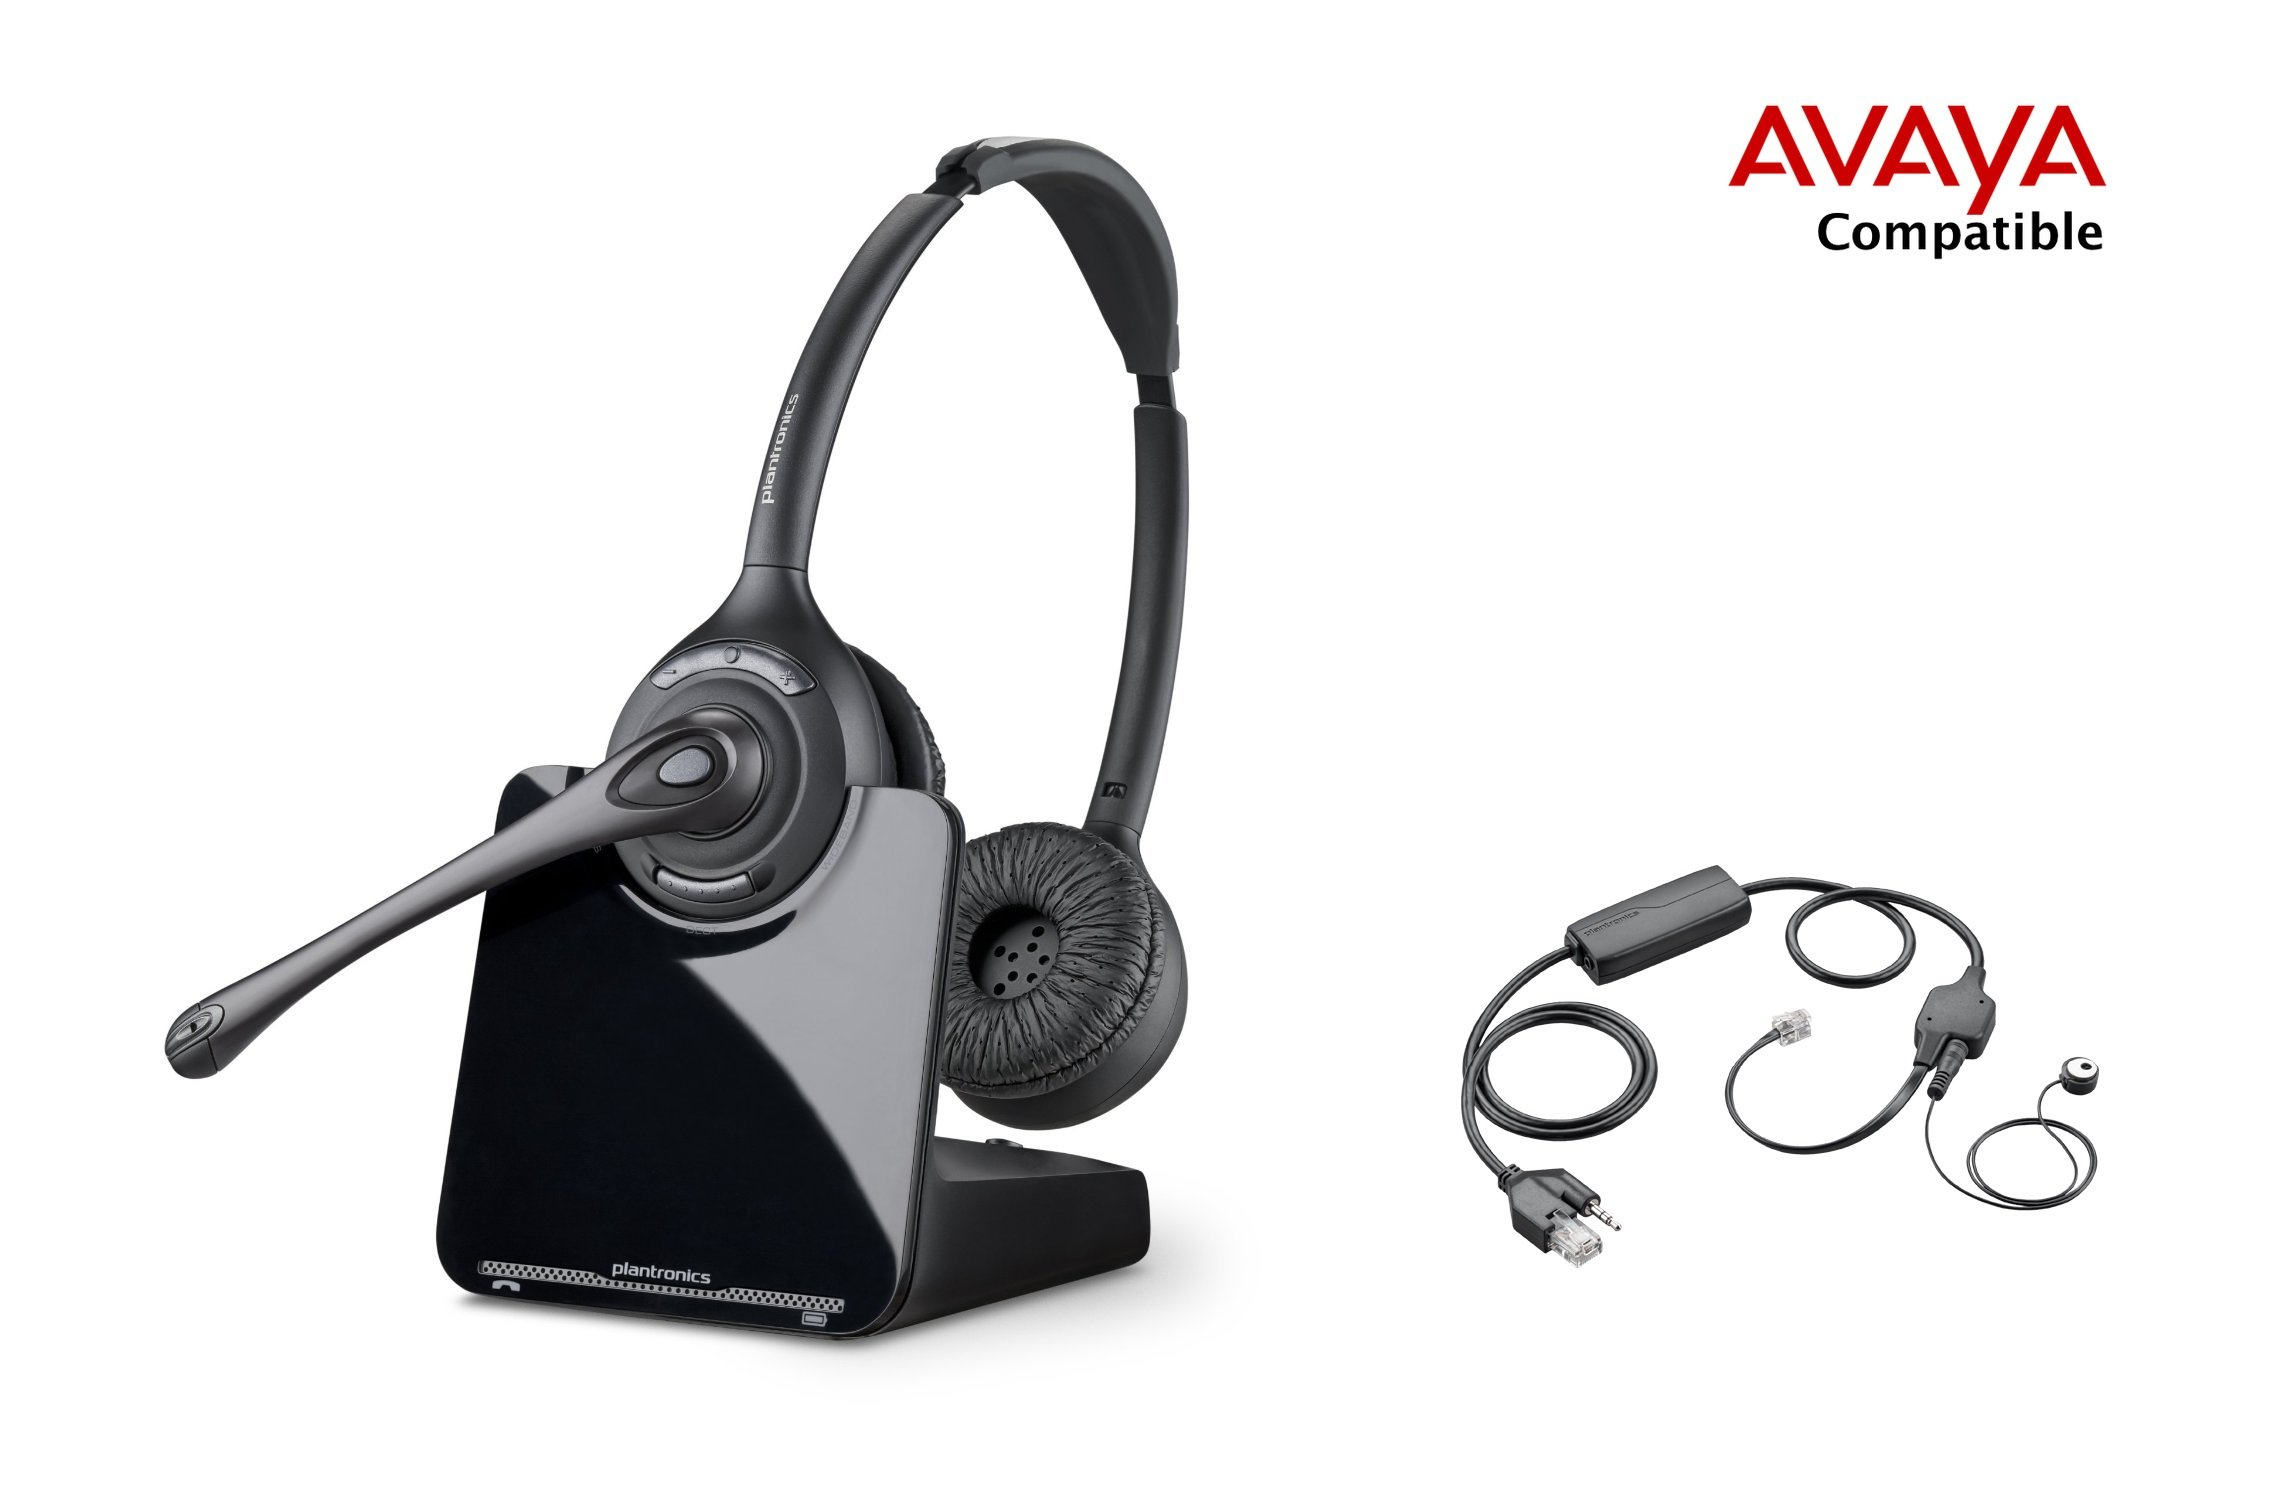 Avaya Compatible Plantronics CS520 VoIP Wireless Headset Bundle with Electronic Remote Answer|End and Ring alert (EHS) for Avaya Phones: 1600, 9600 IP Phones: 1608, 1616, 9601, 9608, 9610, 9611, 9611G, 9620, 9620C, 9620L, 9621, 9630, 9640, 9640G, 9641, 96 by Plantronics